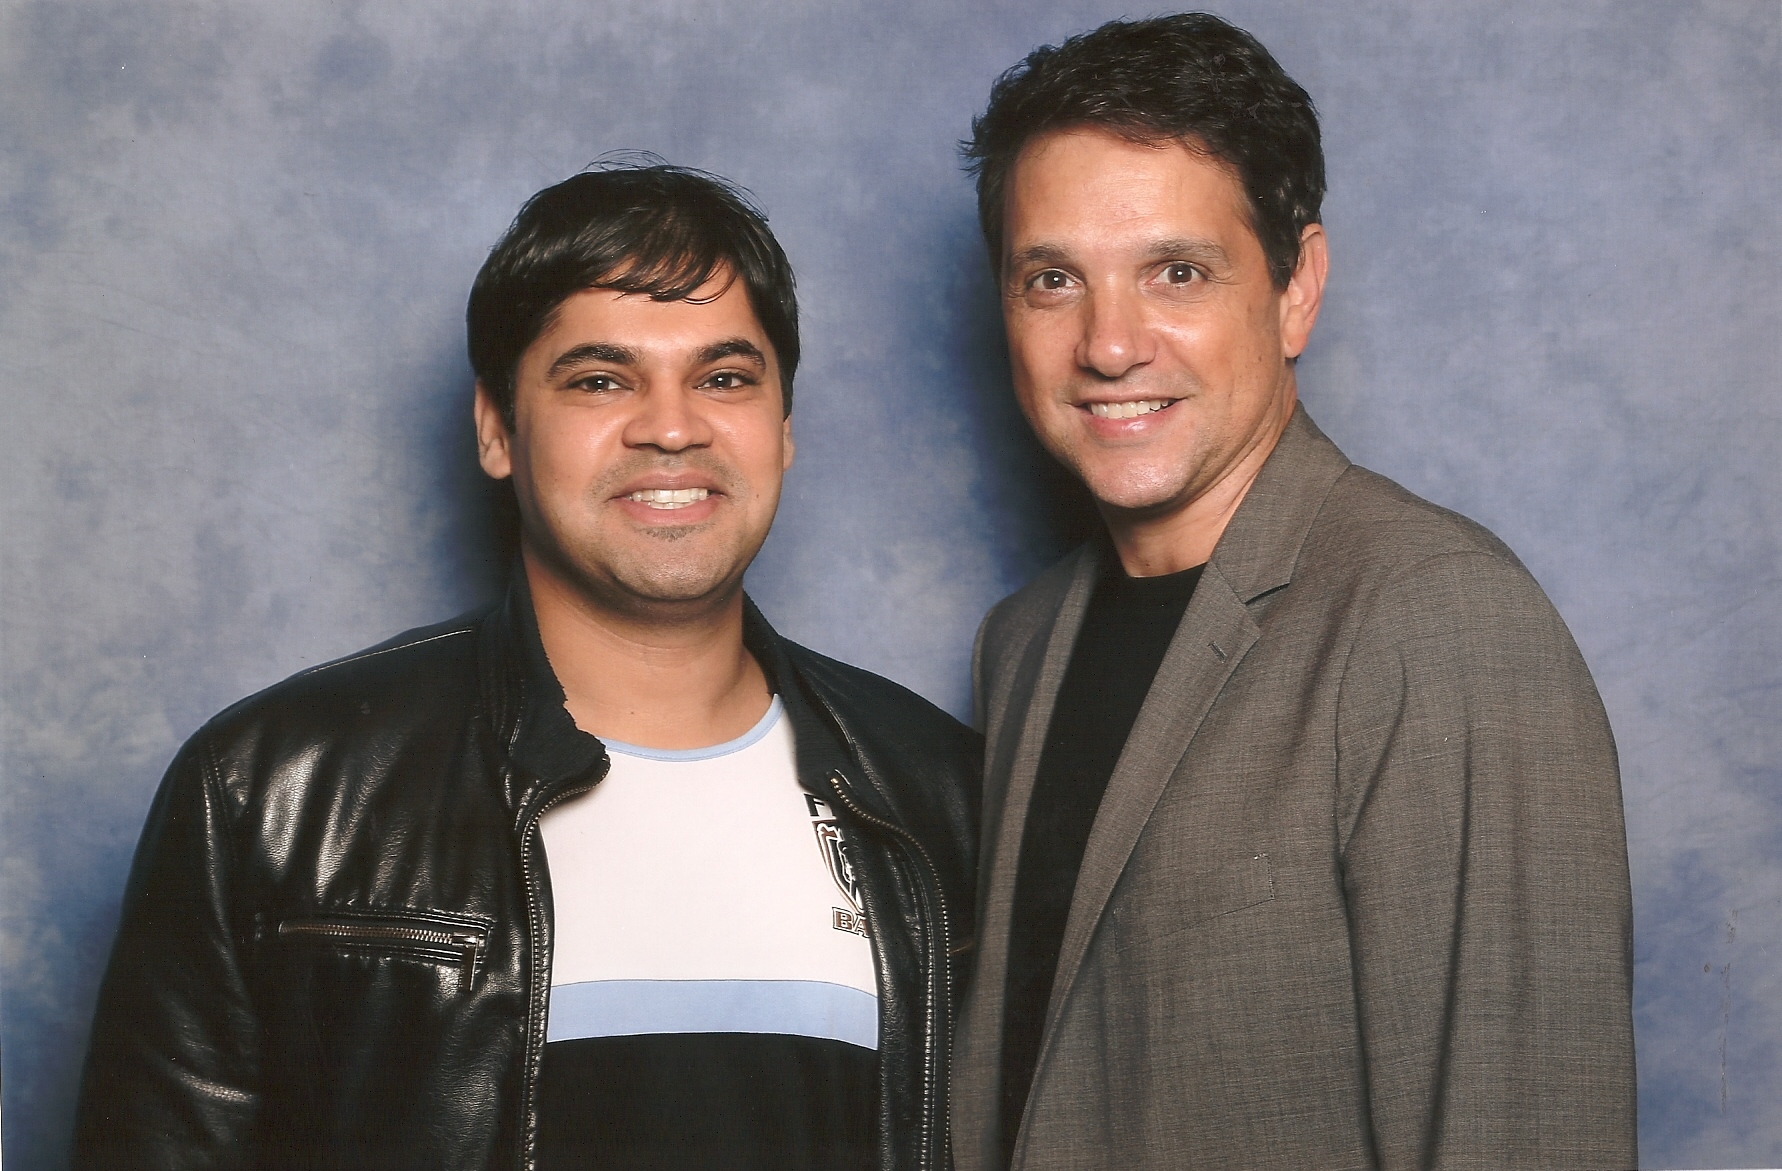 With Actor Ralph Macchio